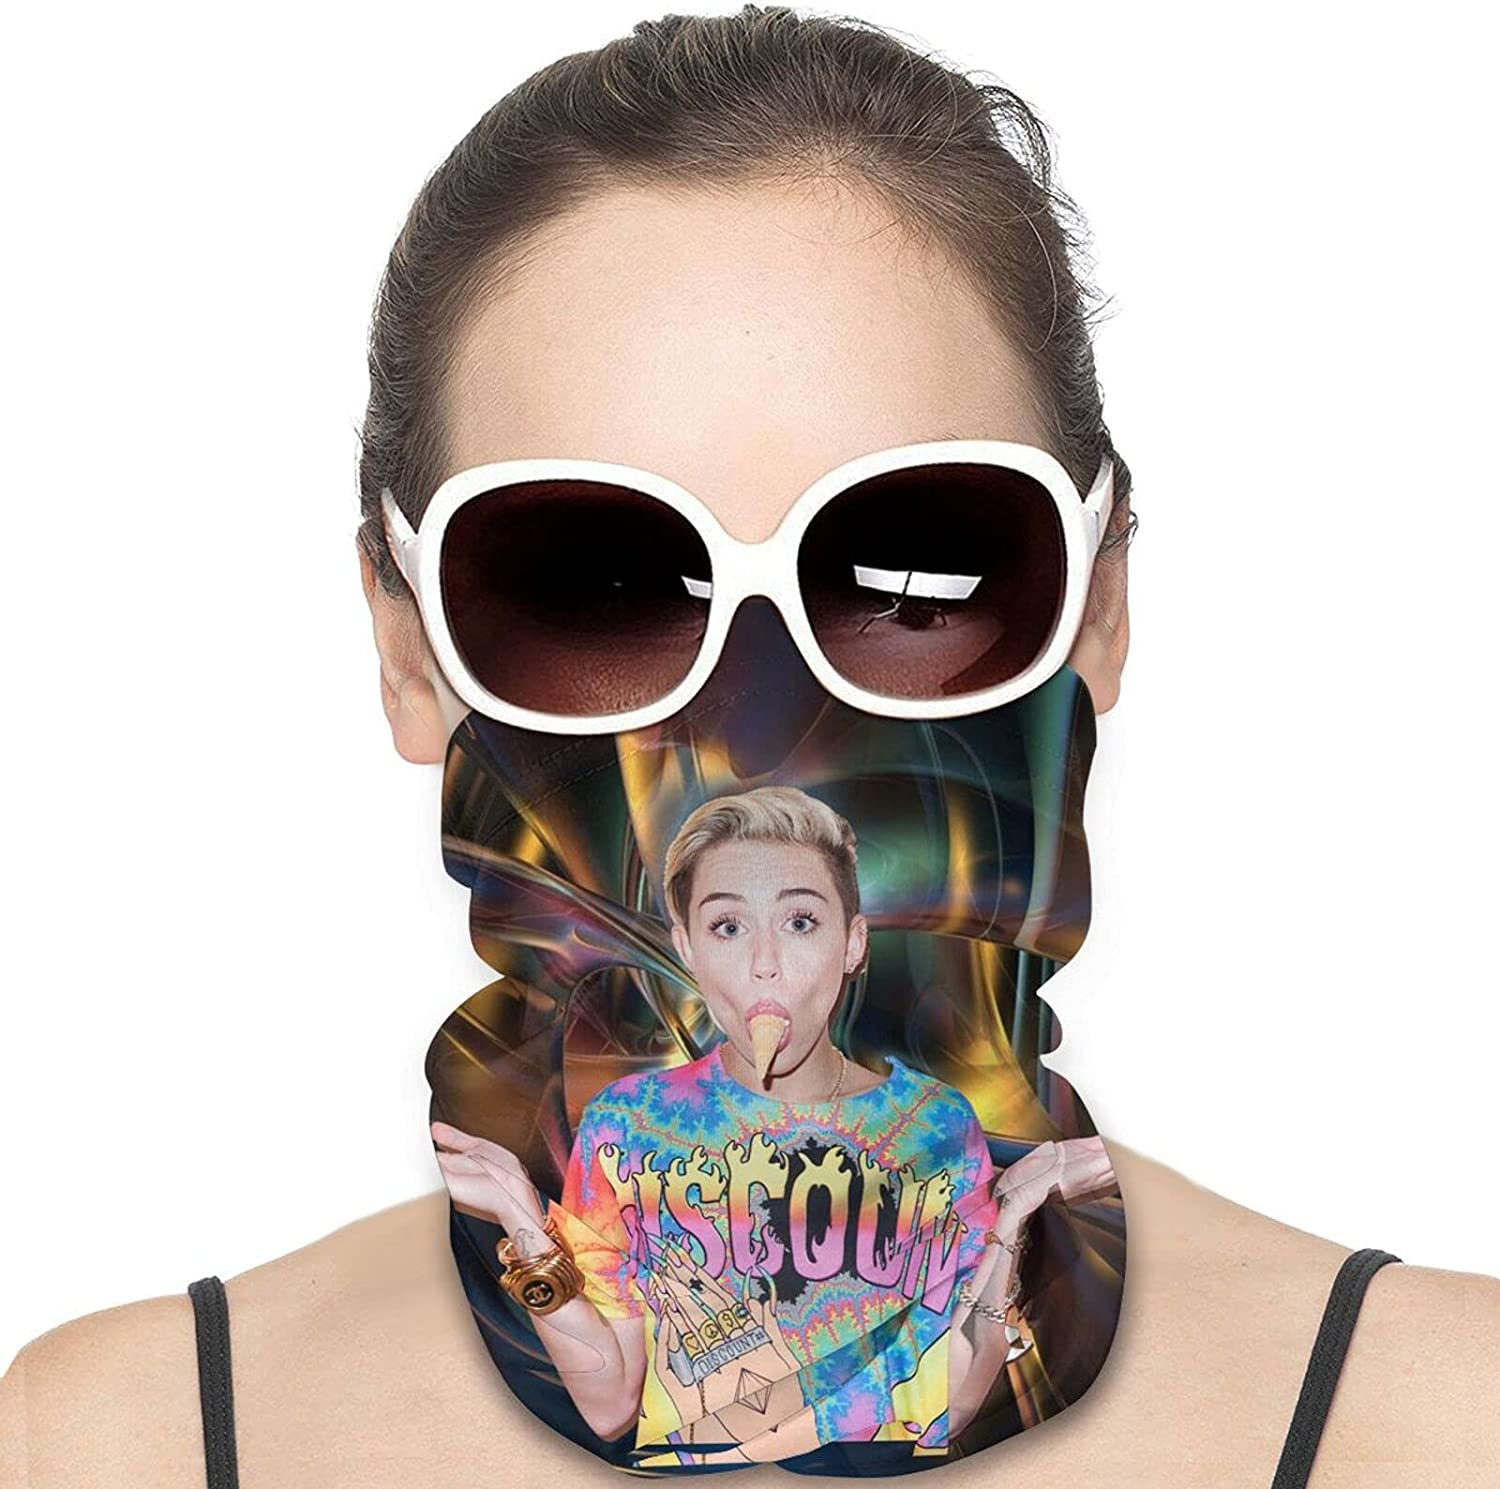 Miley Cyrus Unisex Neck Gaiter Face Mask Man Womans Multifunction Balaclava Face Cover,Cycling Mask,Sport Neck Gaiter,Hiking Scarf,Fishing Mask, Motorcycle Face Cover